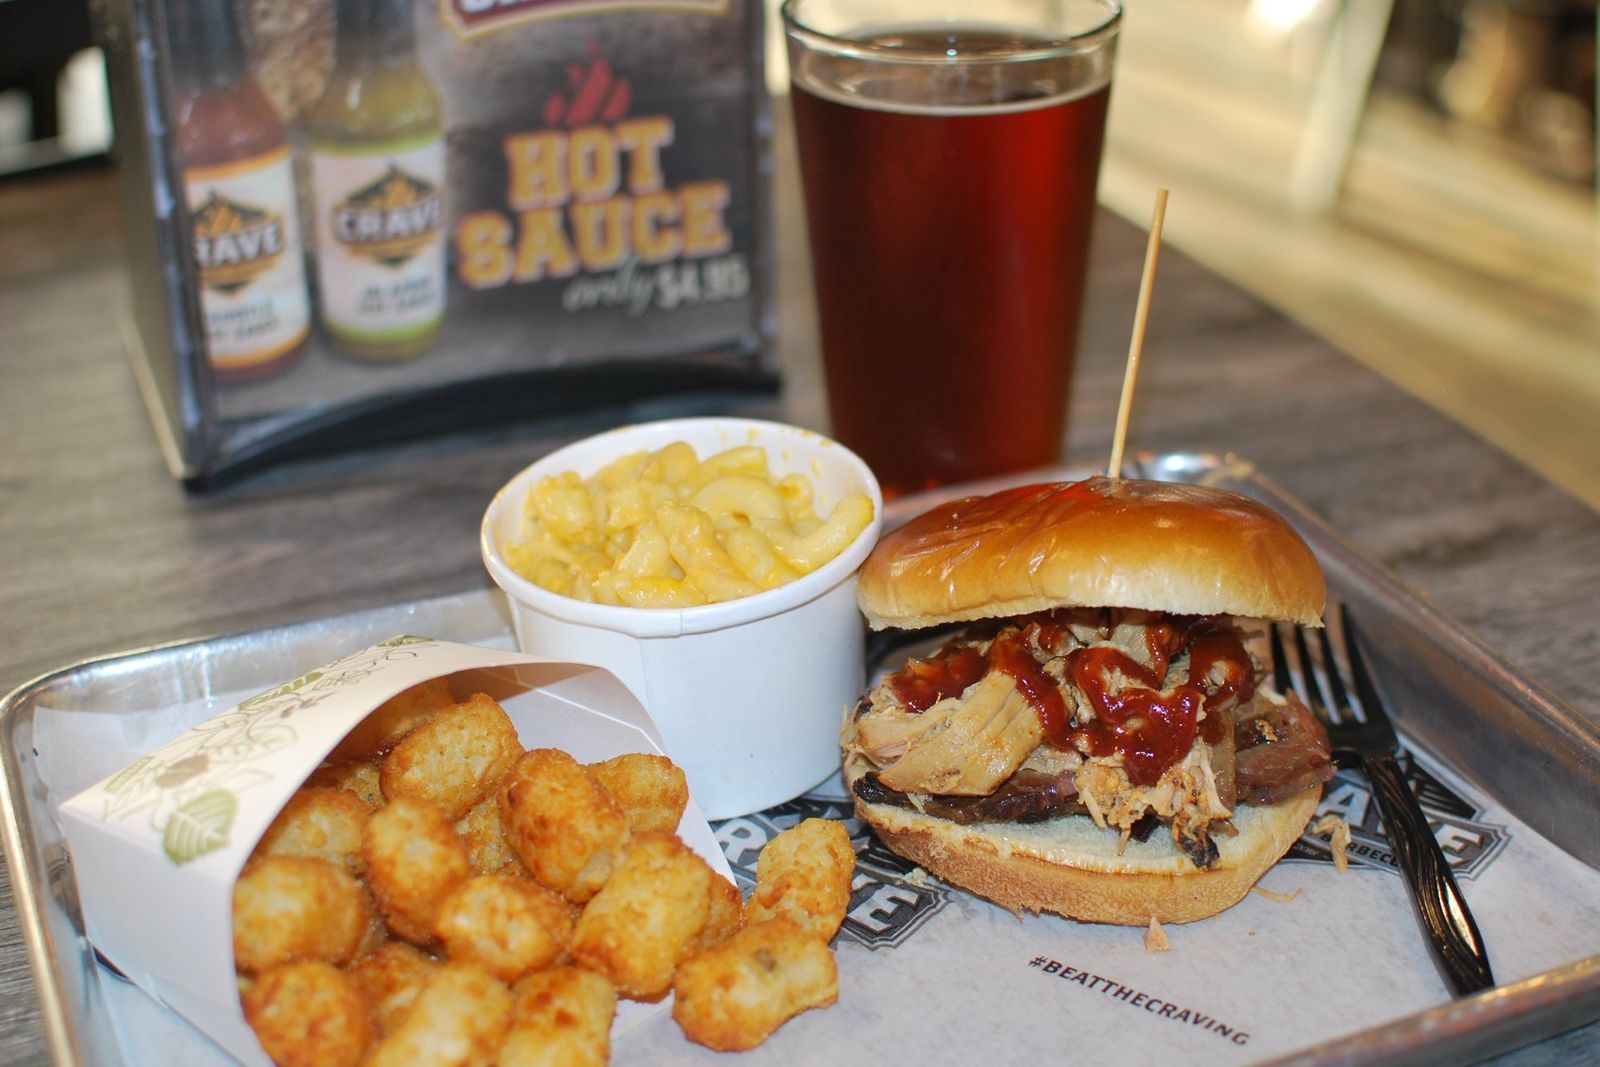 Crave Hot Dogs and BBQ is coming to Shreveport, Louisiana